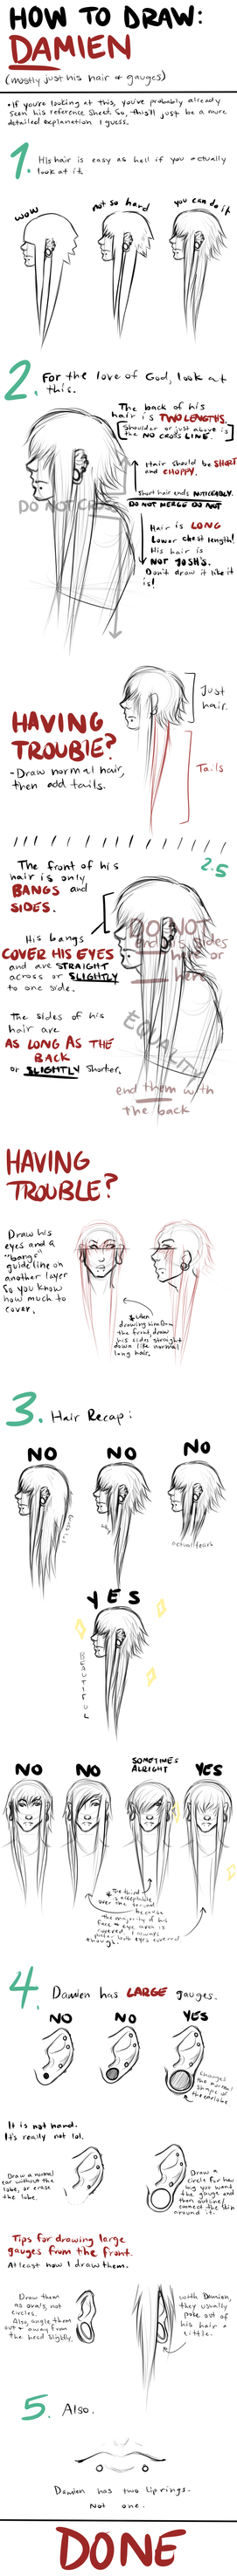 How To Draw Damien by strxbe